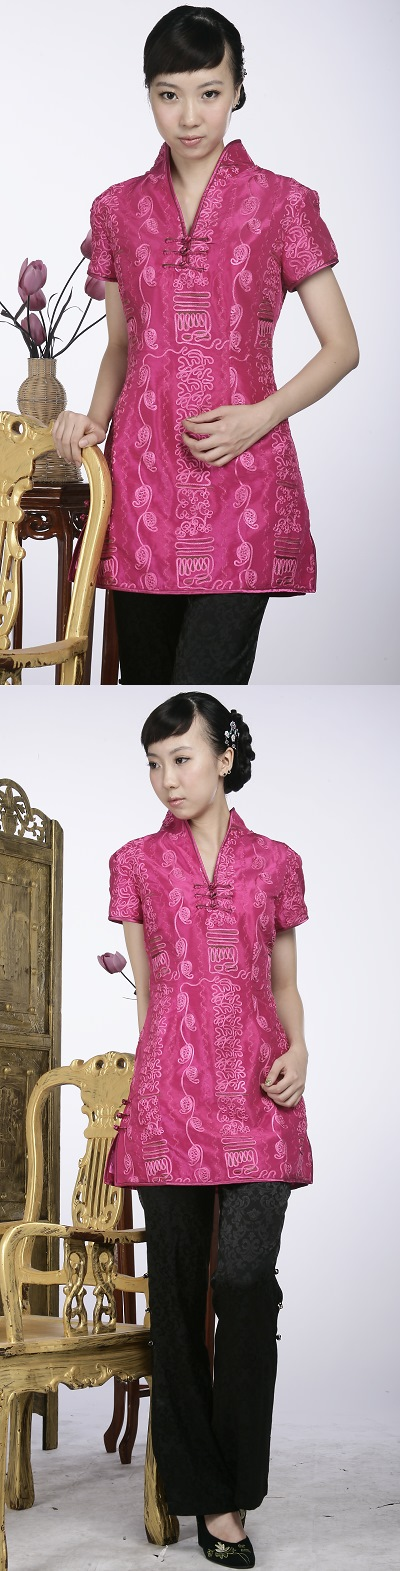 Short-sleeve Embossed Embroidery Mini Cheongsam Dress (Fuchsia)